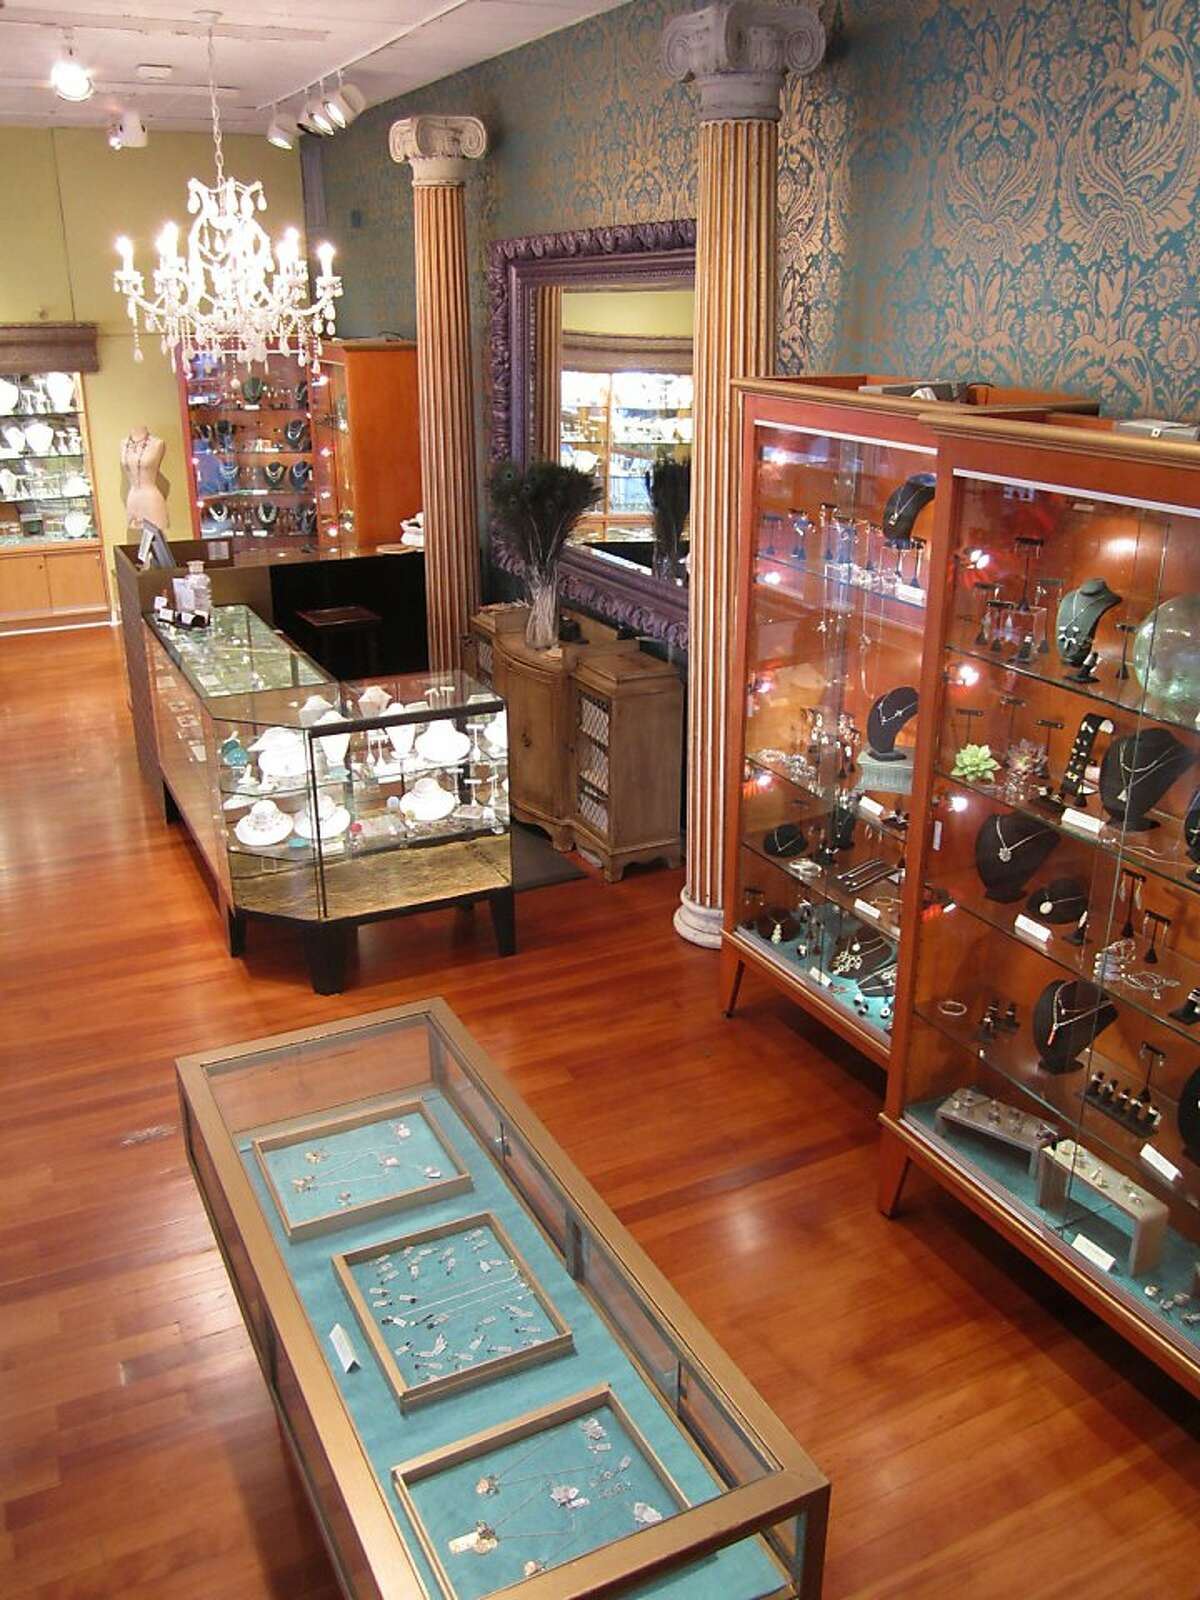 Gallery of Jewels has opened its third and largest location on Post Street in Union Square.